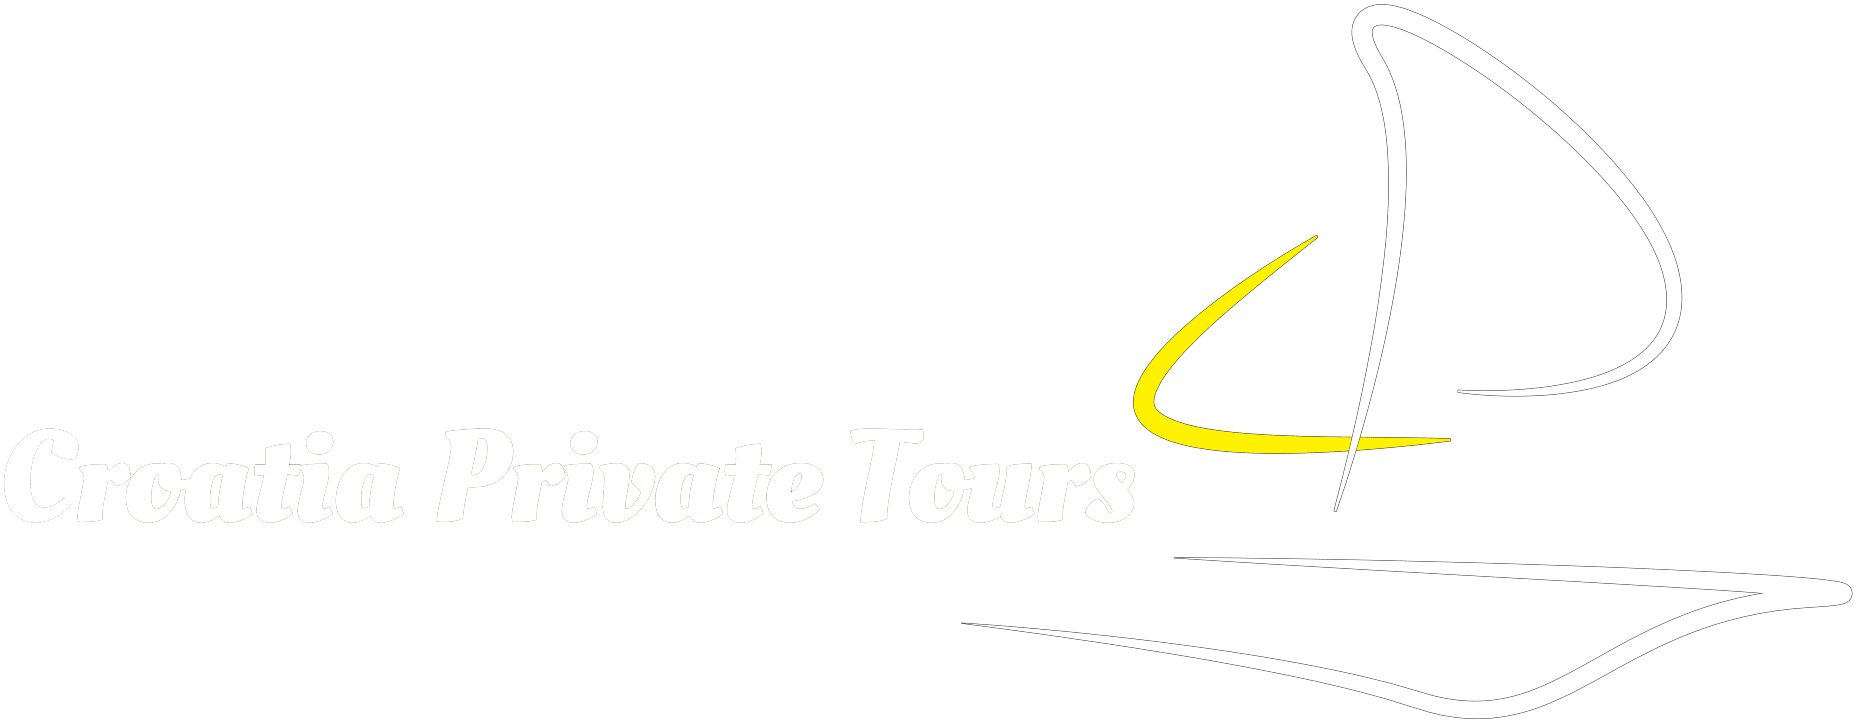 Croatia Private tours tailor-made tours in Croatia logo